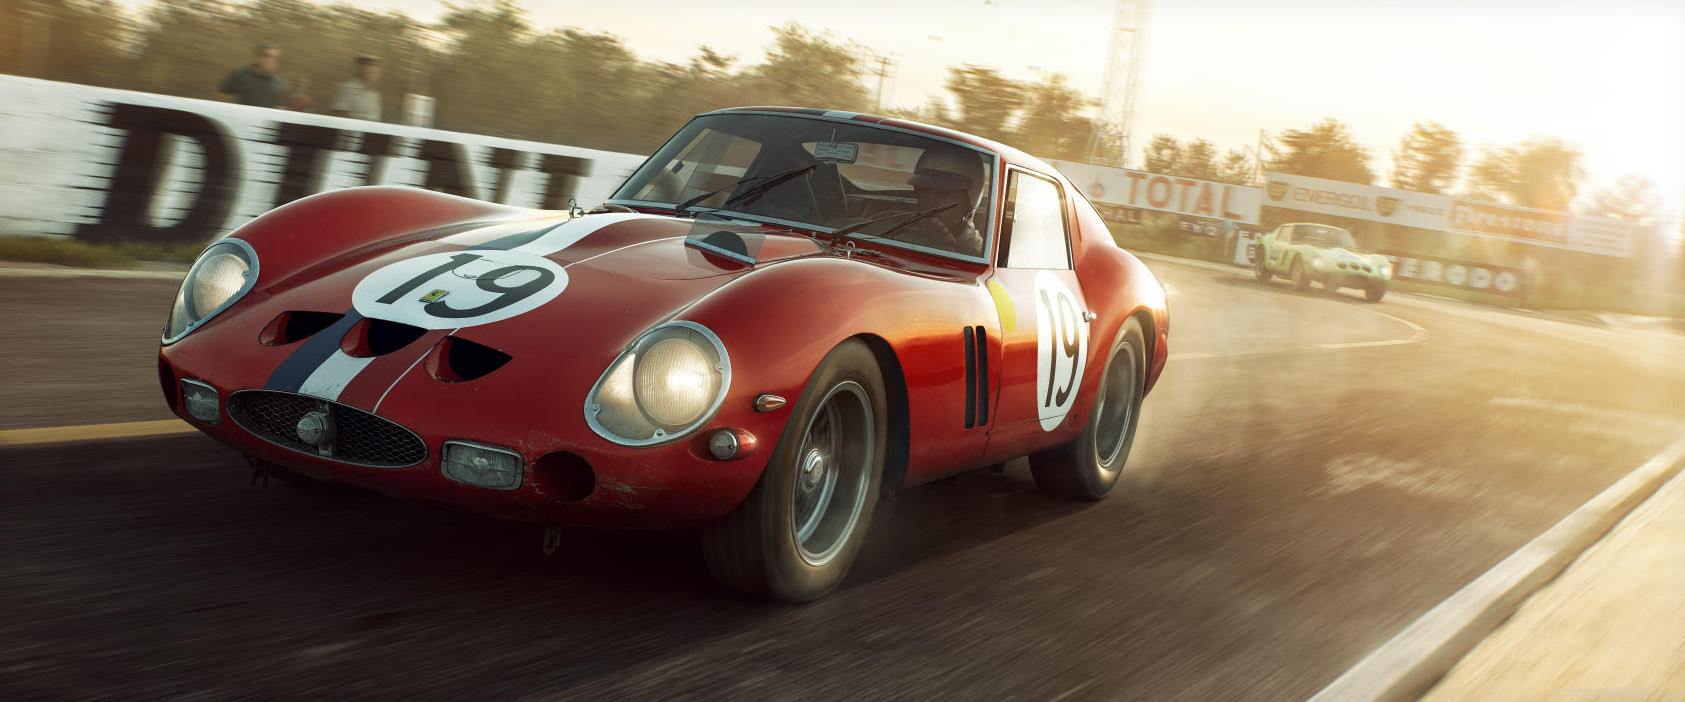 ferrari 250 gto by unique limited. Black Bedroom Furniture Sets. Home Design Ideas